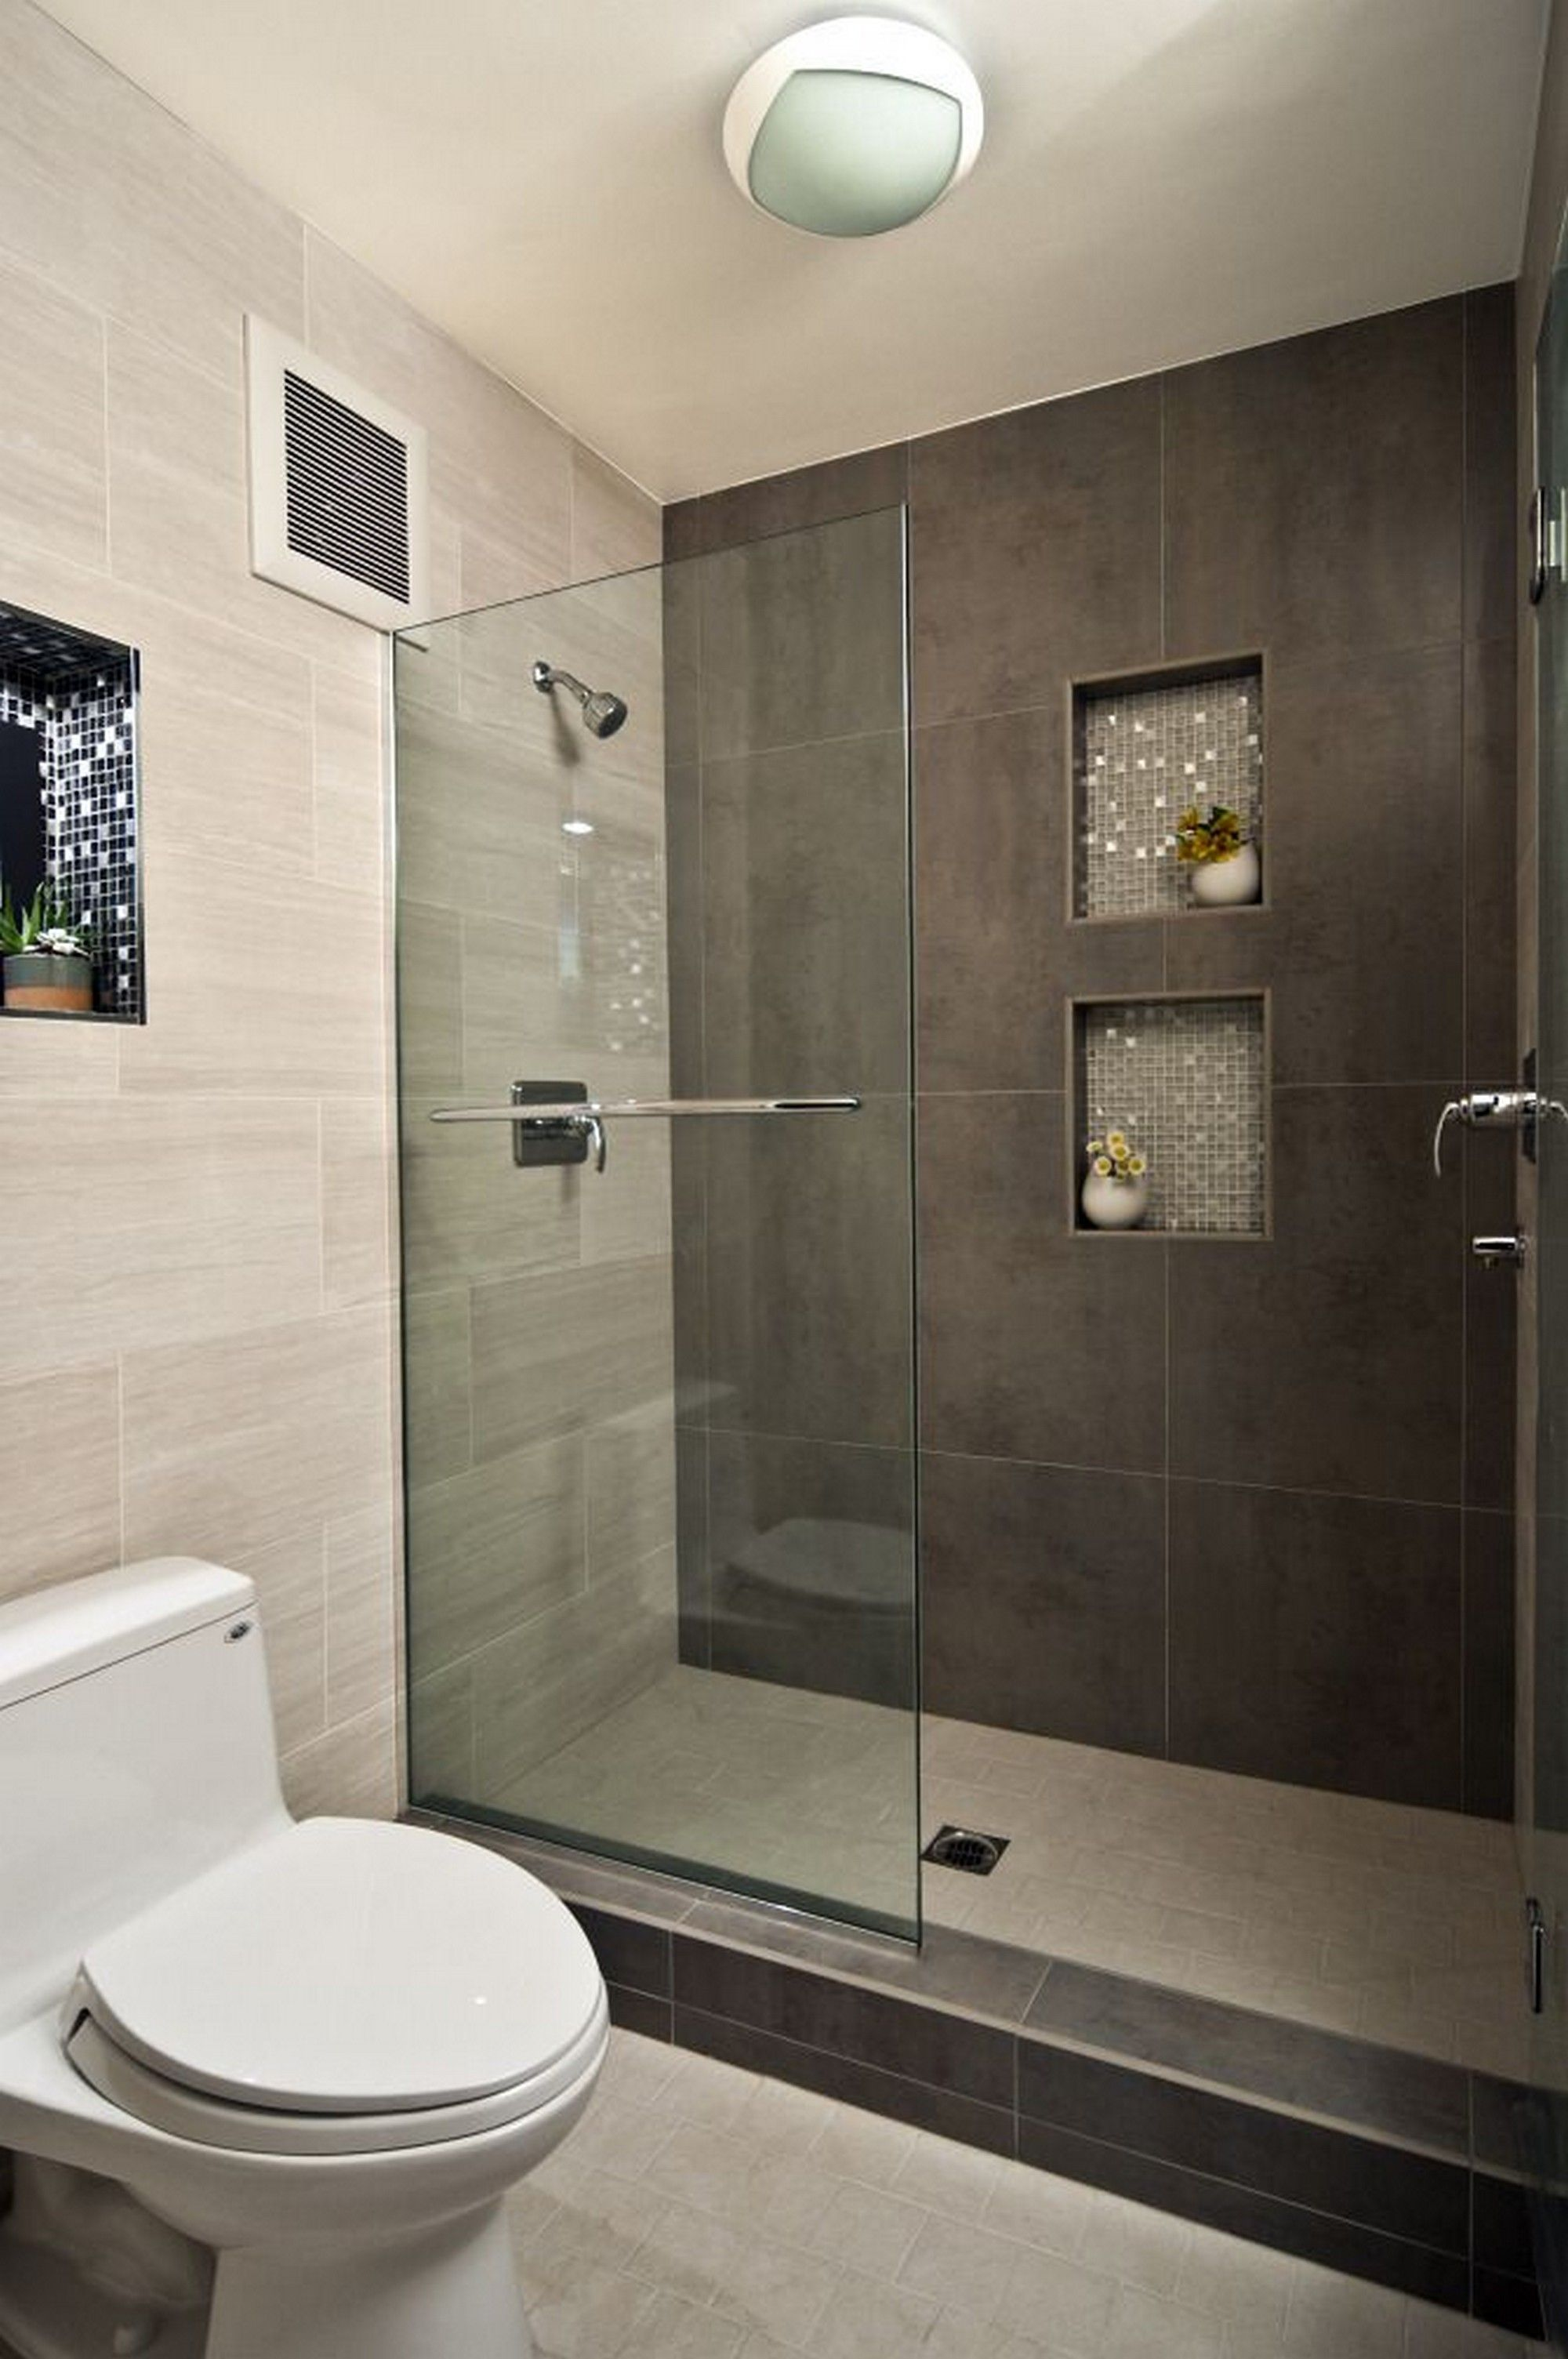 Superieur Grey White Bathroom Walk In Shower Designs Decoration Using Grey Concrete  Tile Bathroom Walls Including Clear Glass Shower Door And In Wall Grey  Mosaic Tile ...